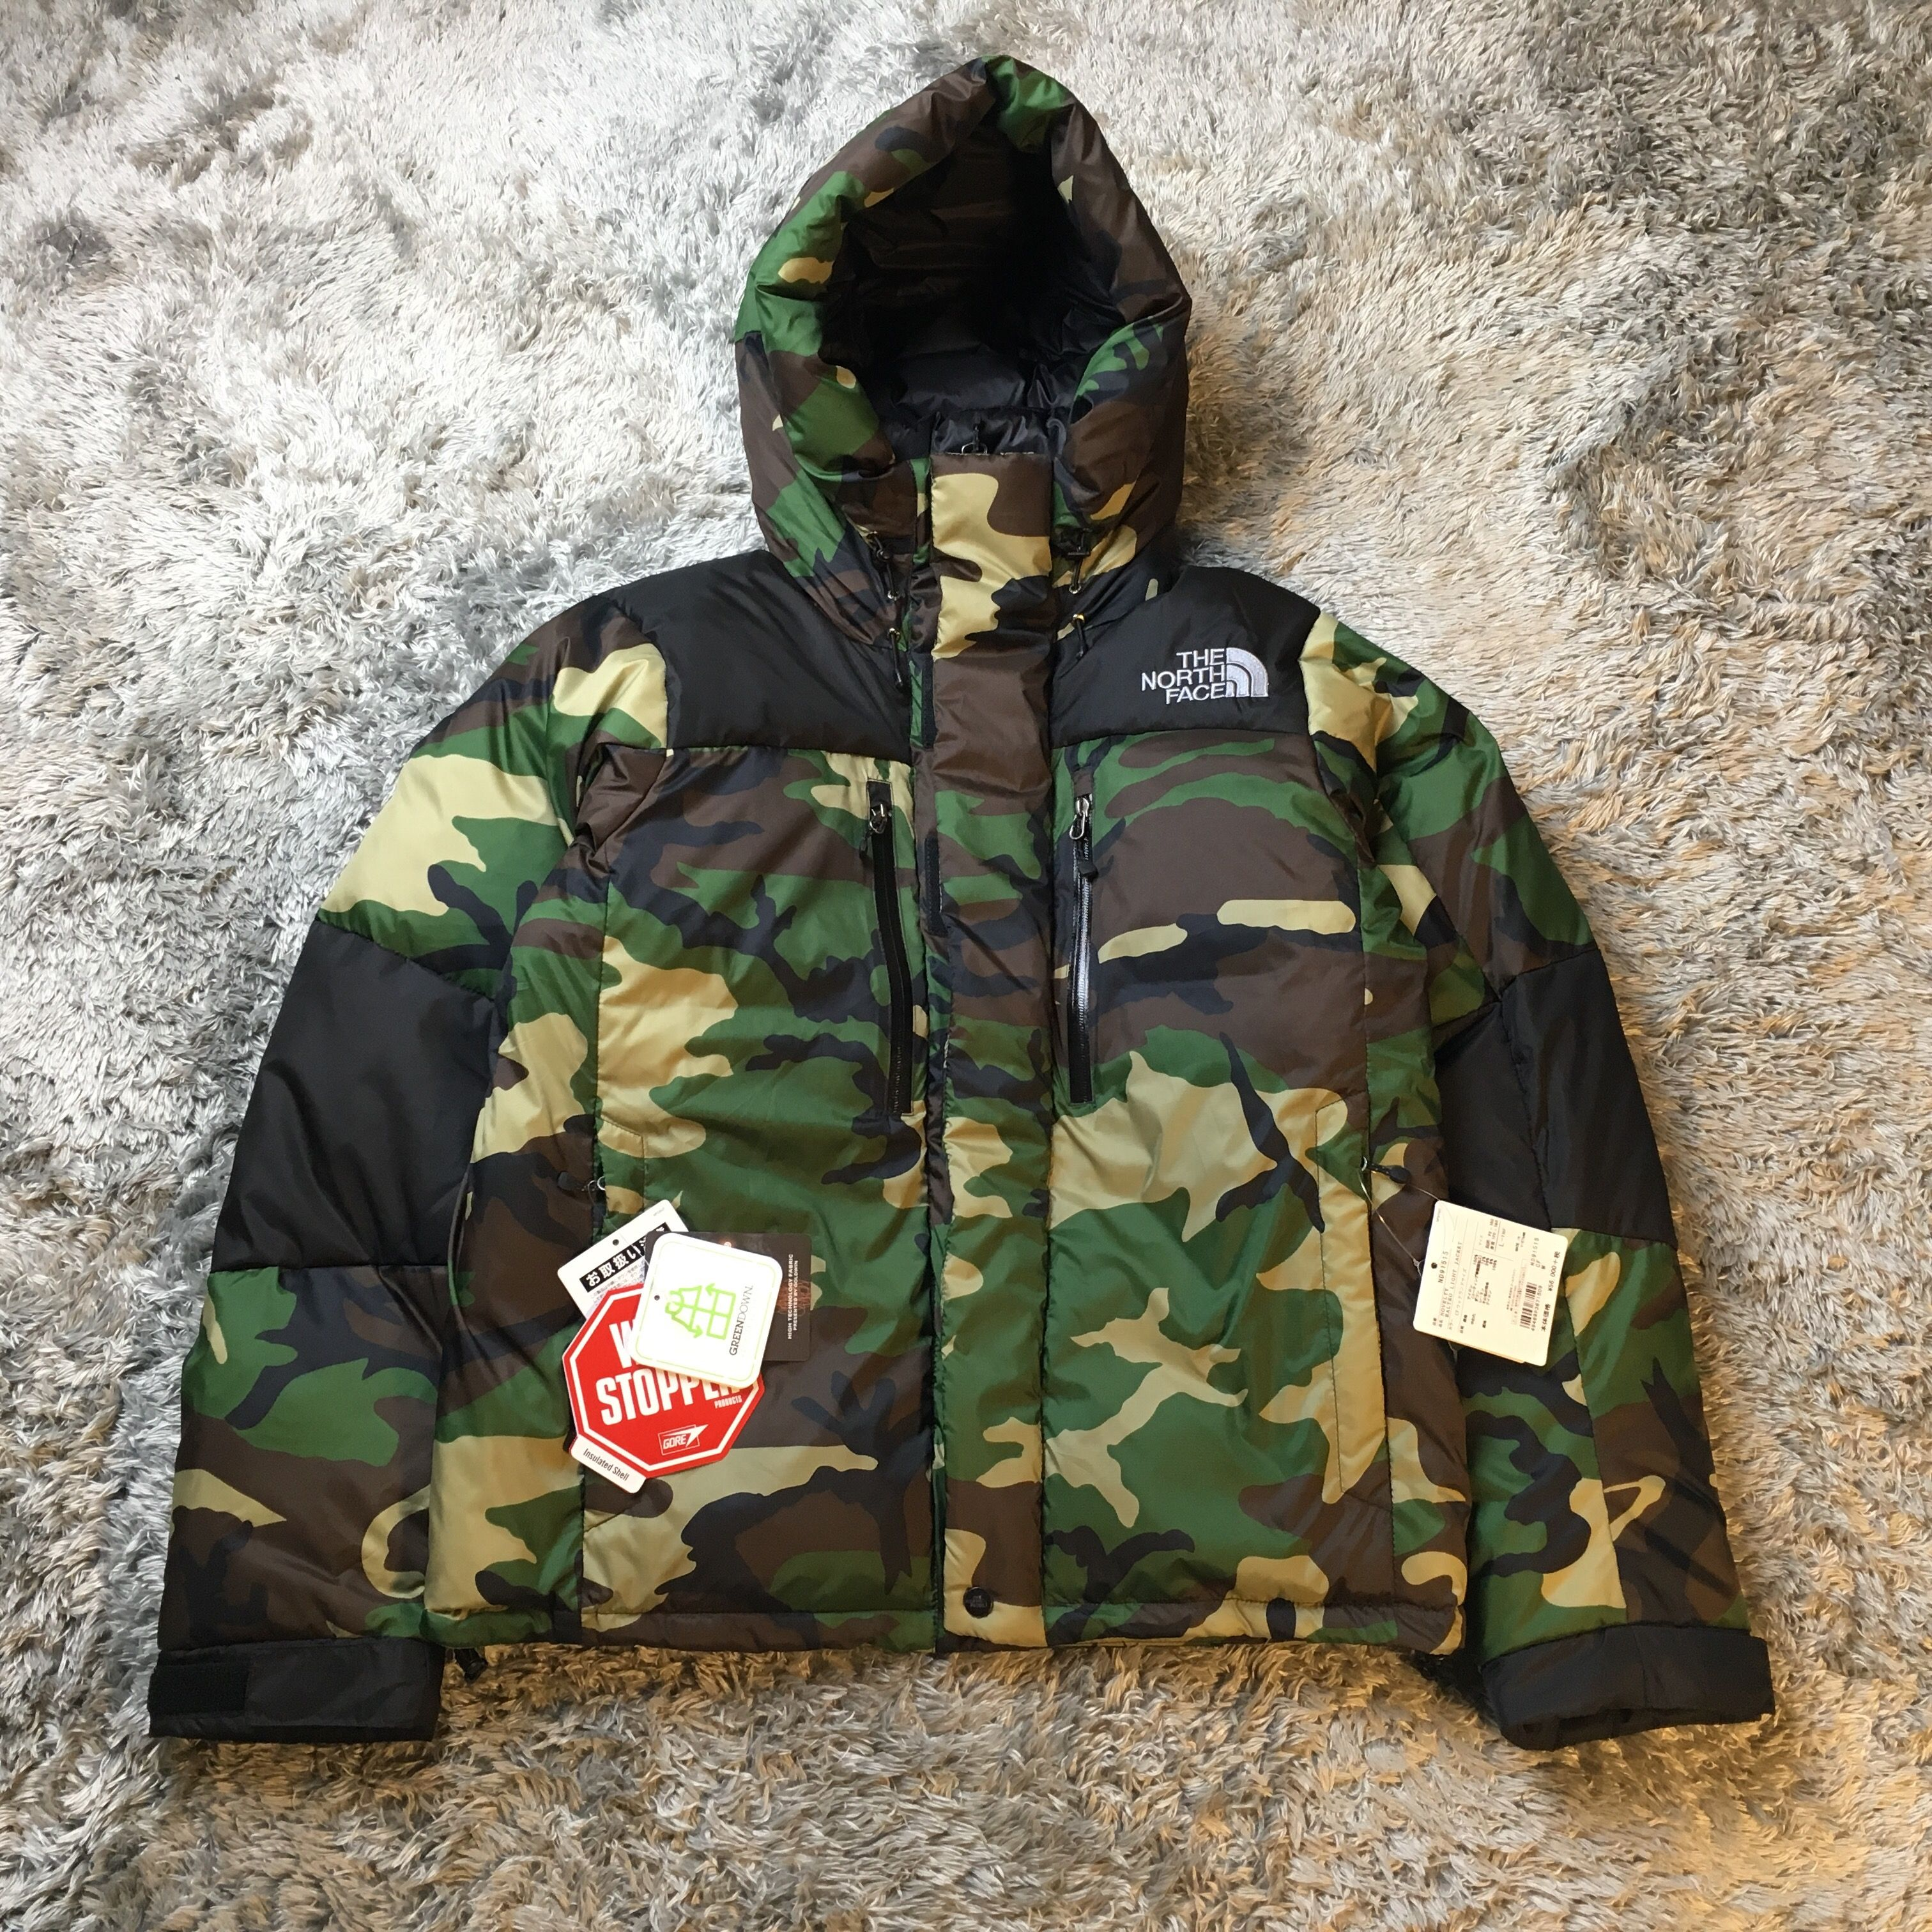 1f94e0dcc Pin by boopdocom on THE NORTH FACE in 2019 | Camo jacket, Light ...